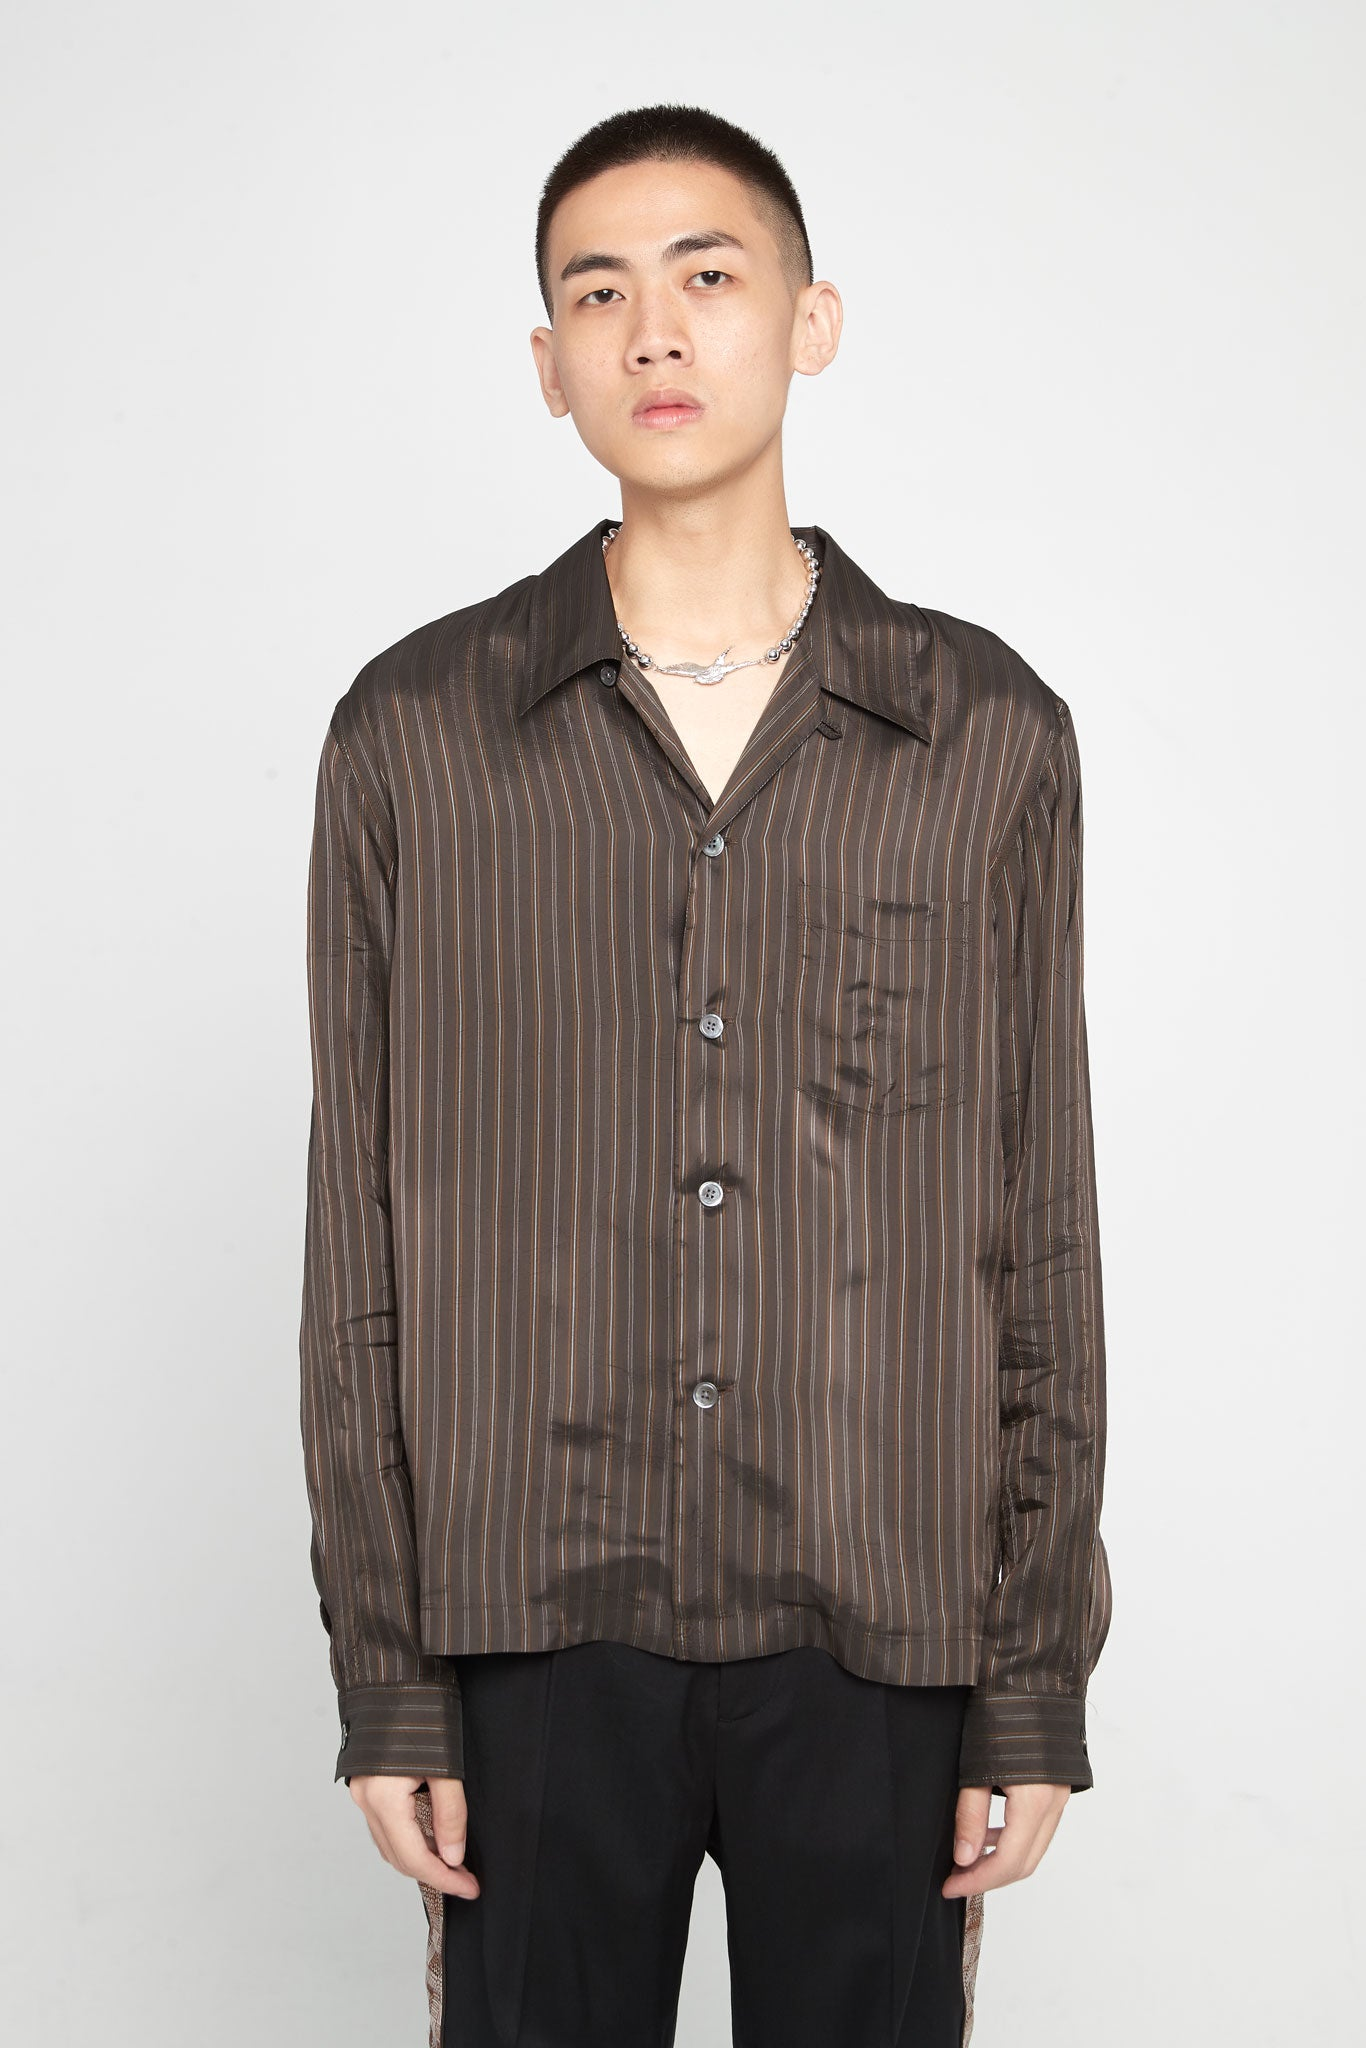 P.X. Evening Shirt Brown Stripe